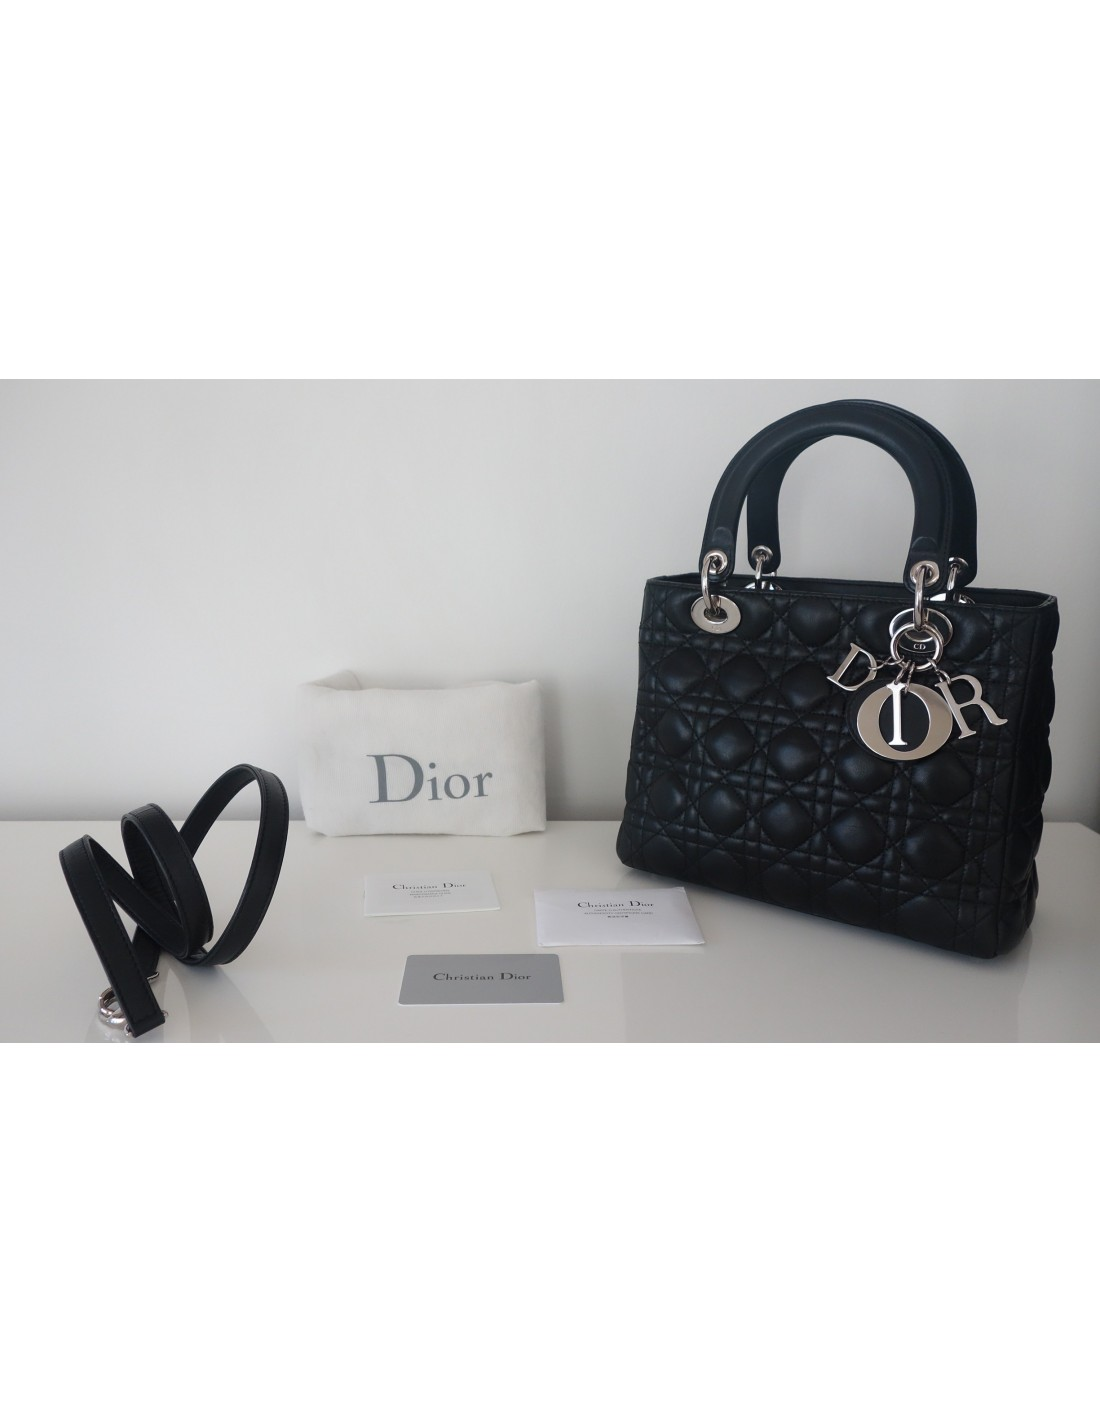 0d4078810f SAC LADY DIOR MEDIUM CUIR NOIR - Atoutluxe Boutique